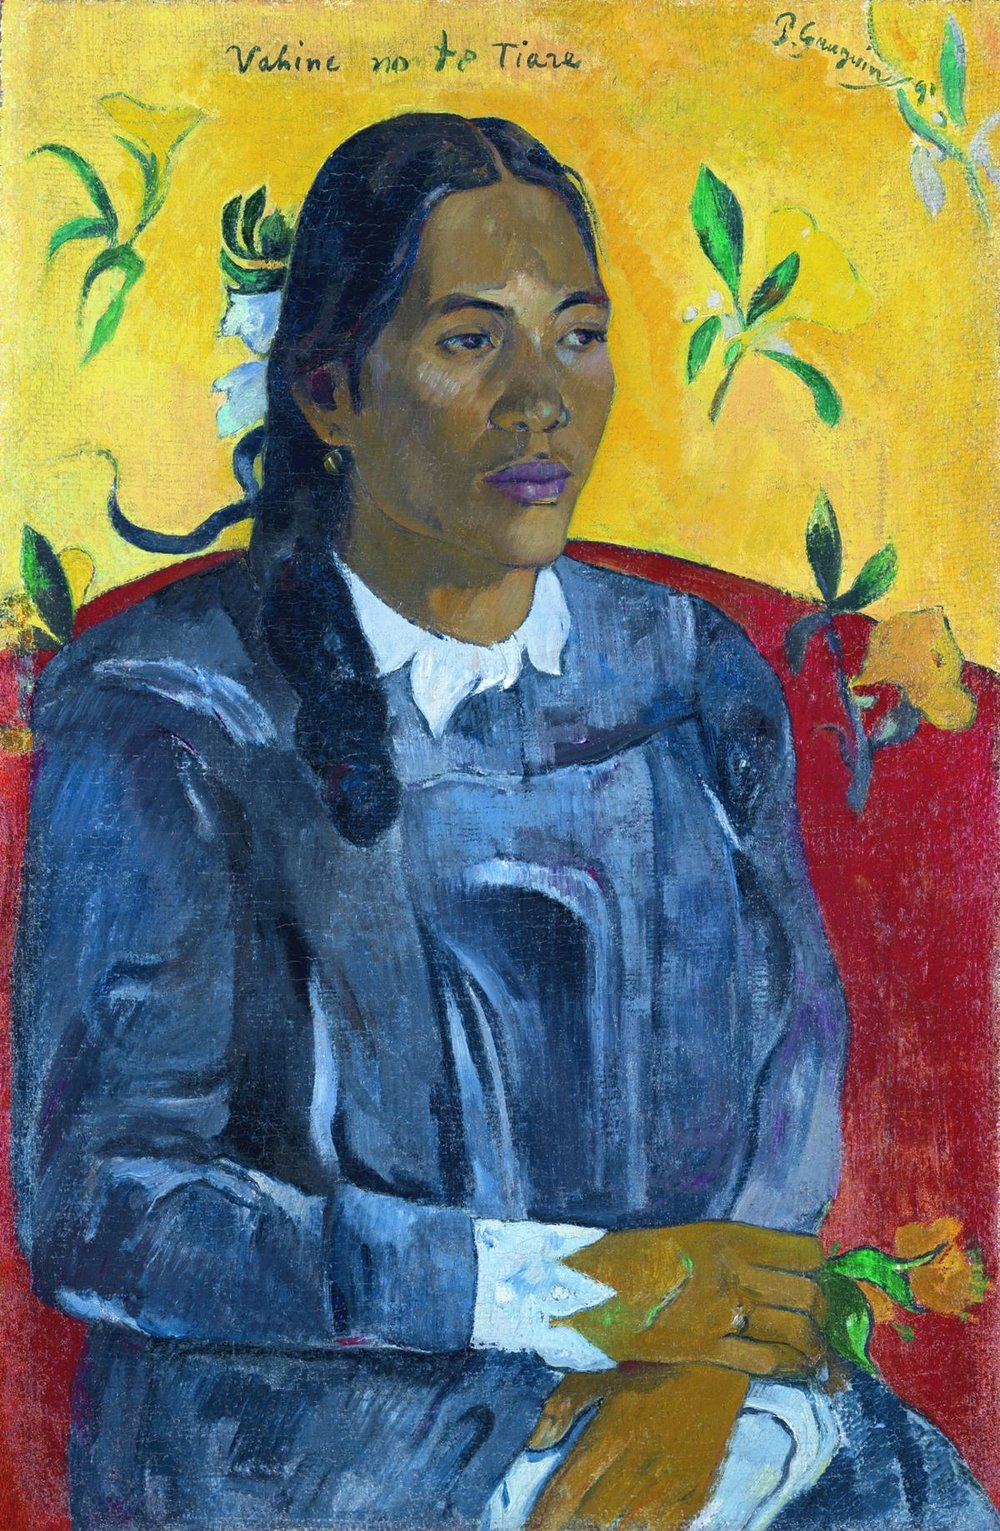 Tahitian Woman with a Flower, Paul Gauguin, 1891 (Image courtesy of NY Carlsberg Glyptotek)